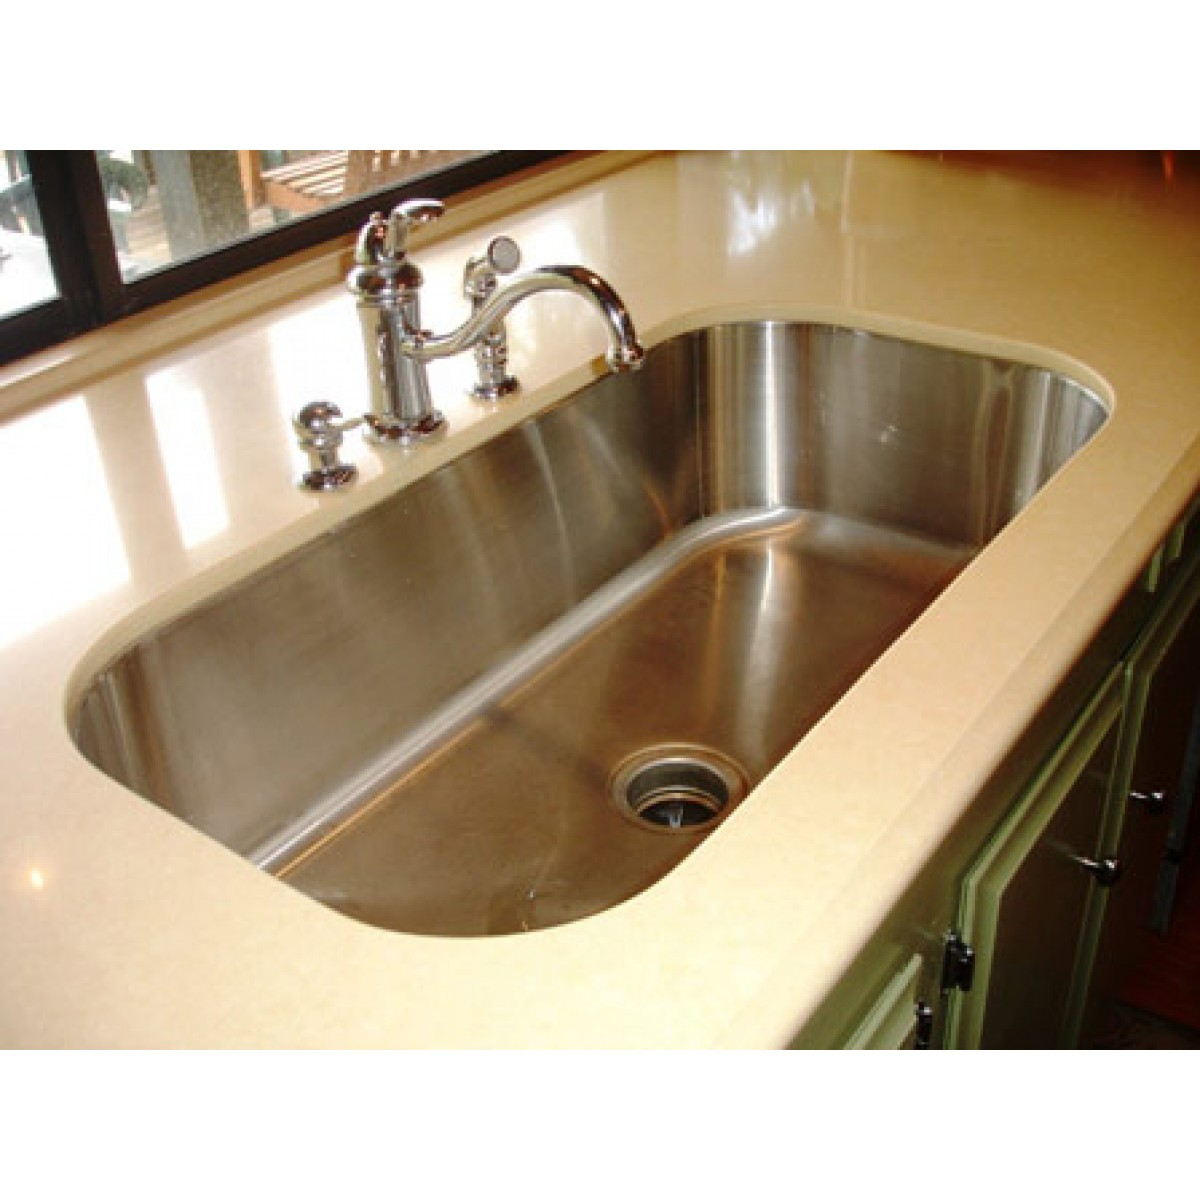 Kitchen Island 18 Deep 30 inch stainless steel undermount single bowl kitchen sink - 18 gauge